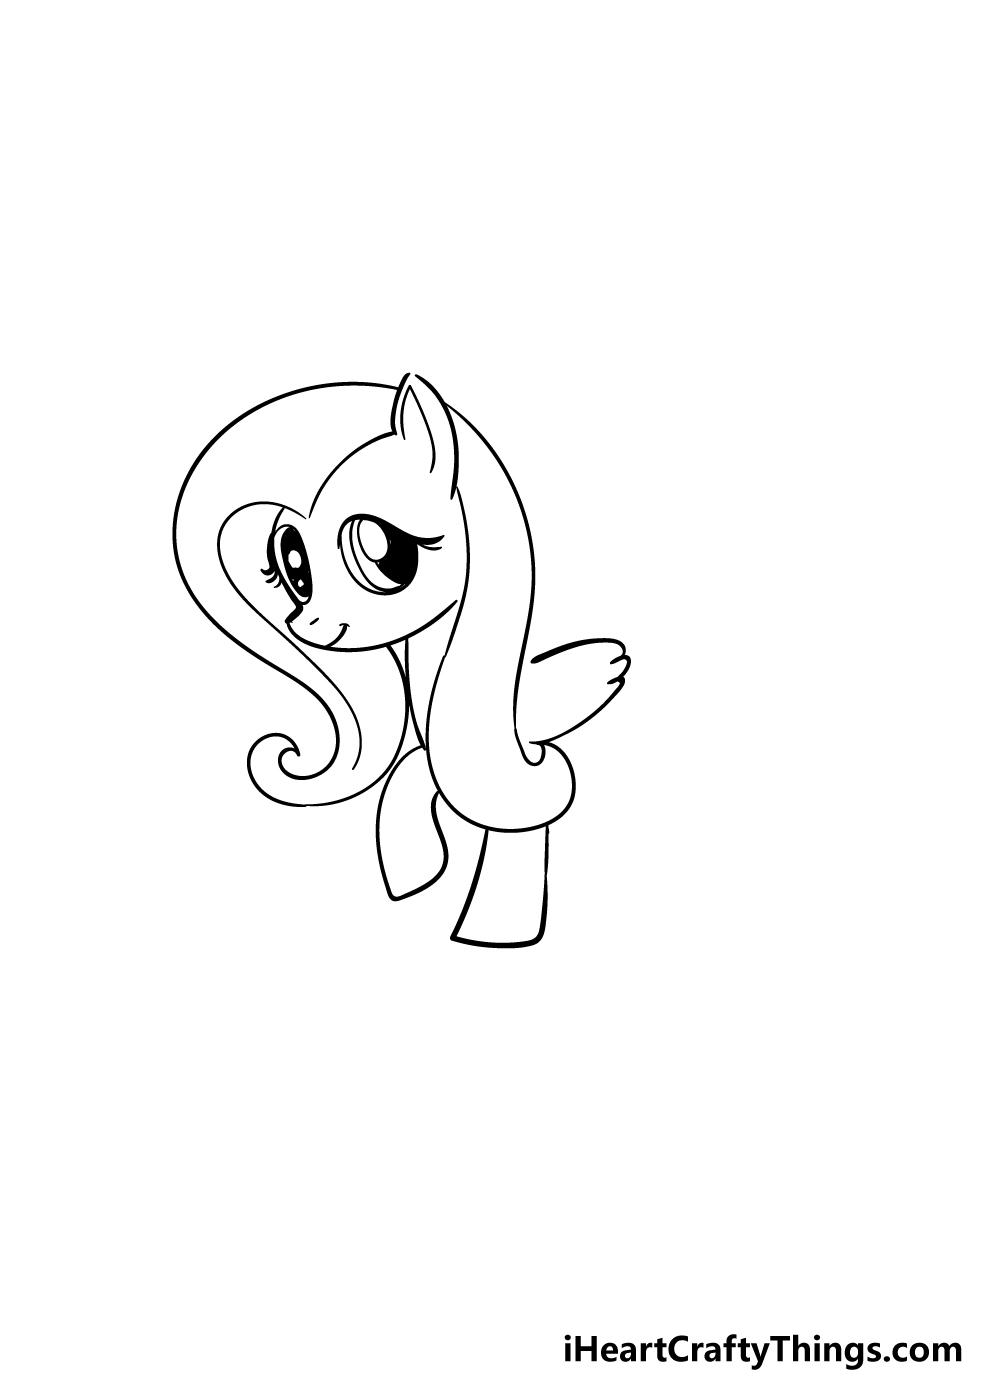 my little pony drawing step 4